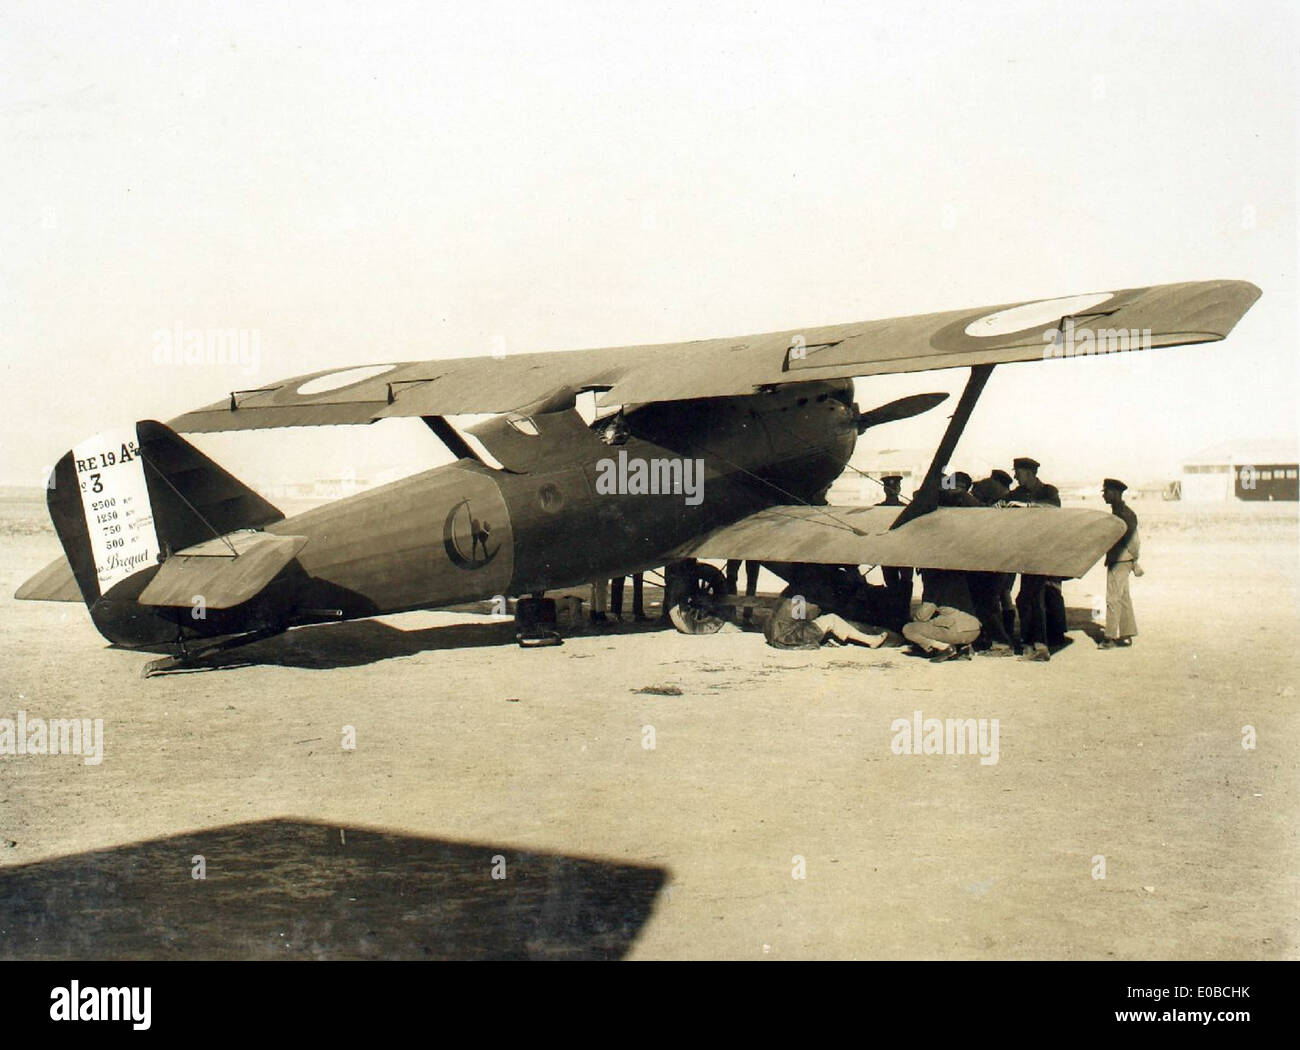 French long distance machine. Hinaidi Aerodrome Pelletier d'Oisy Breguet 19 - Stock Image